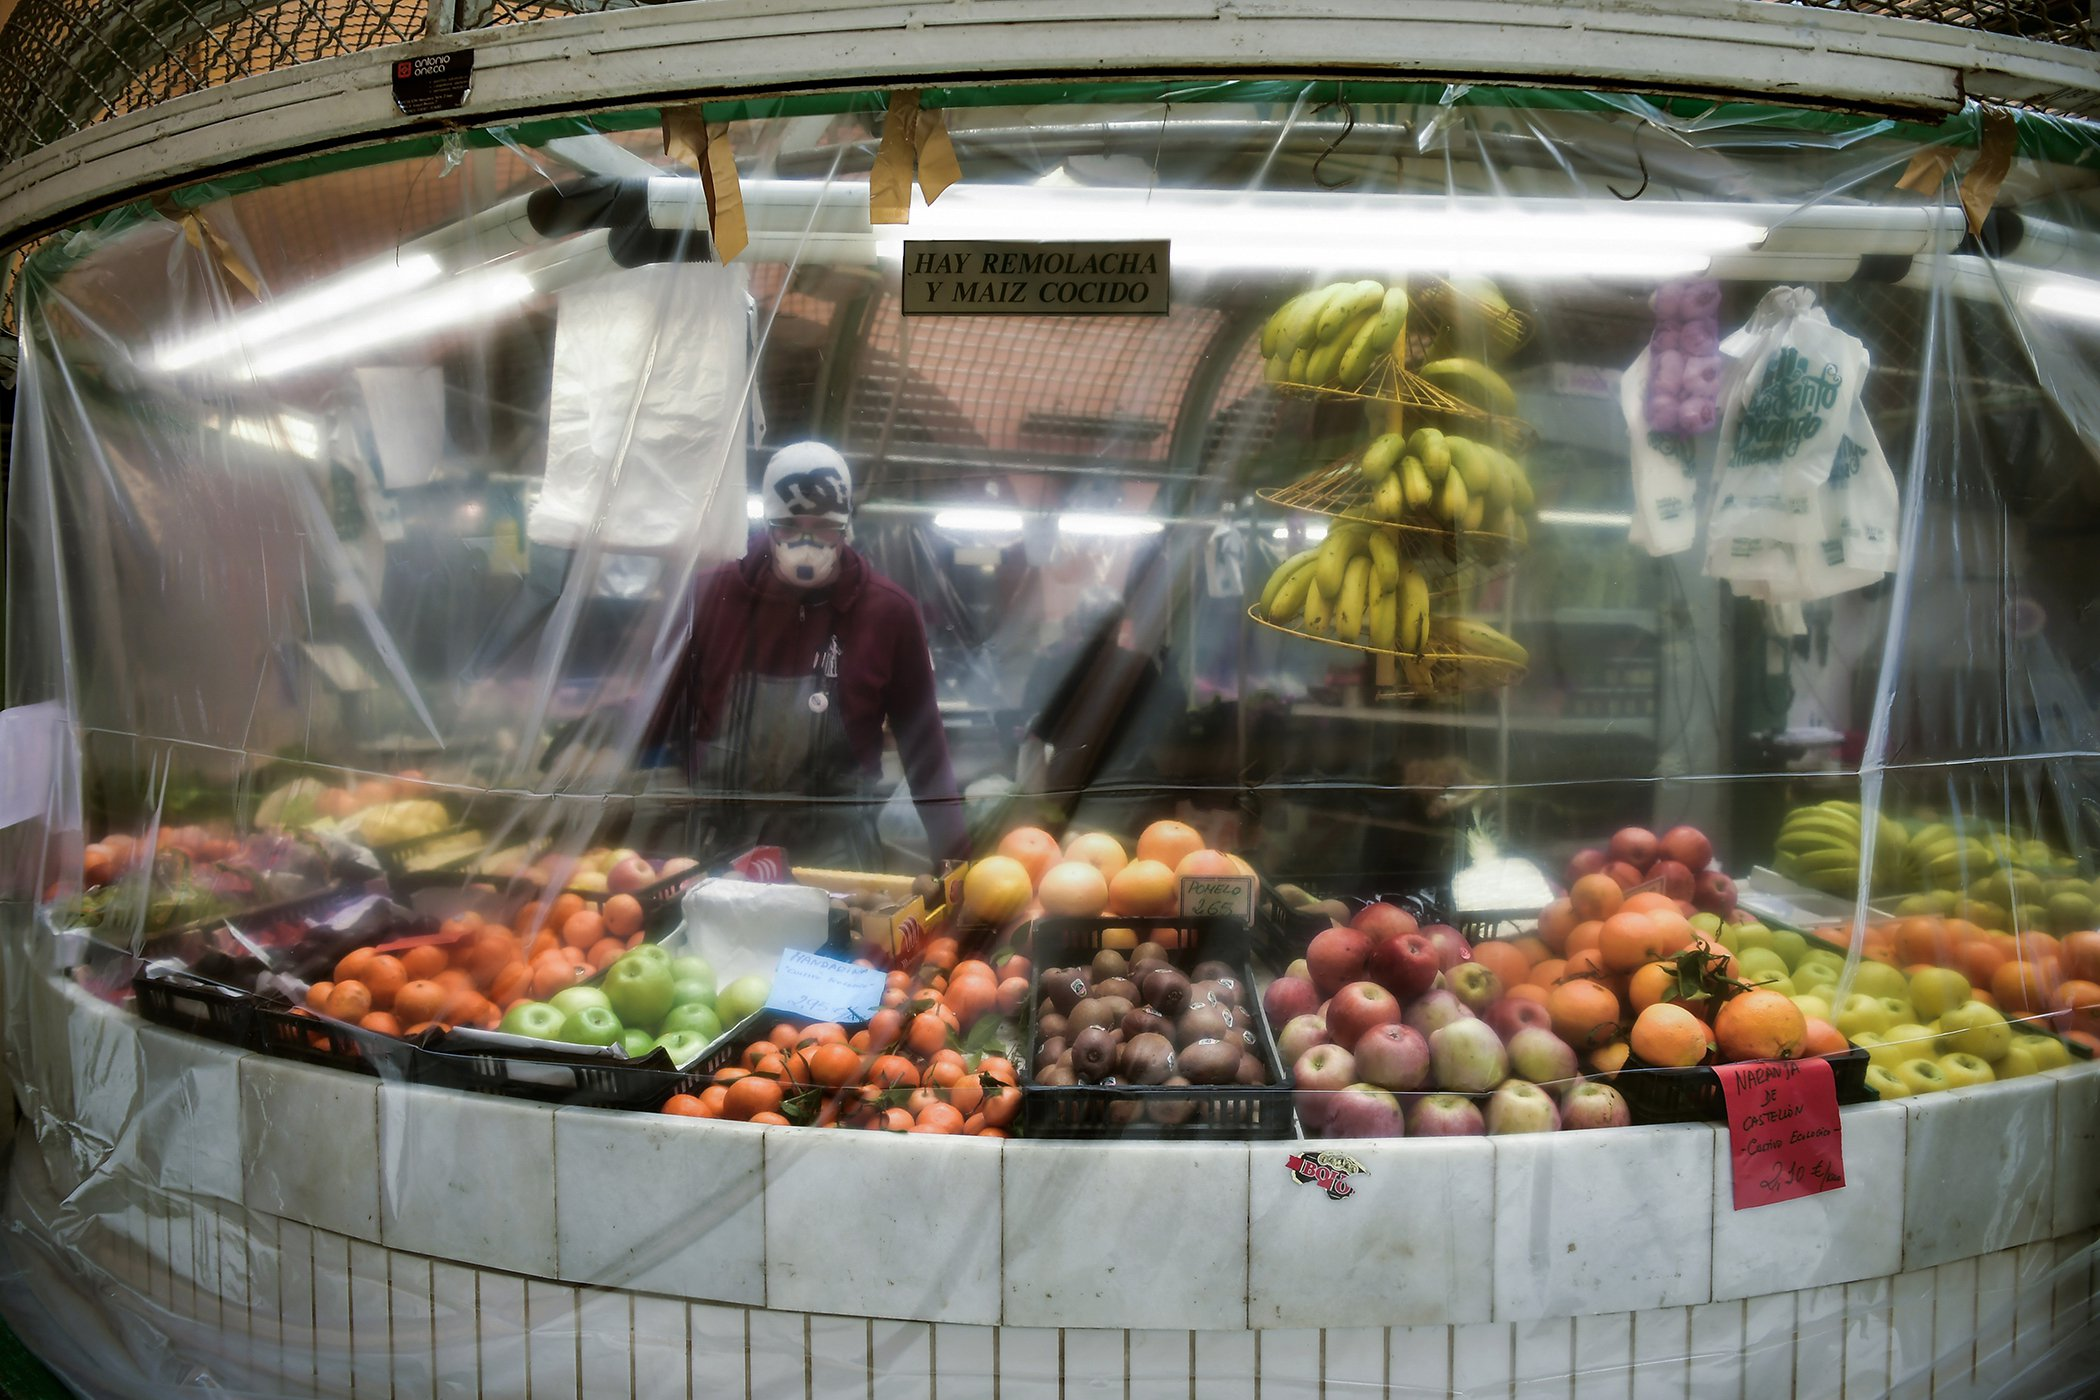 COVID-19-Spain-Grocery-Stores-002.jpg